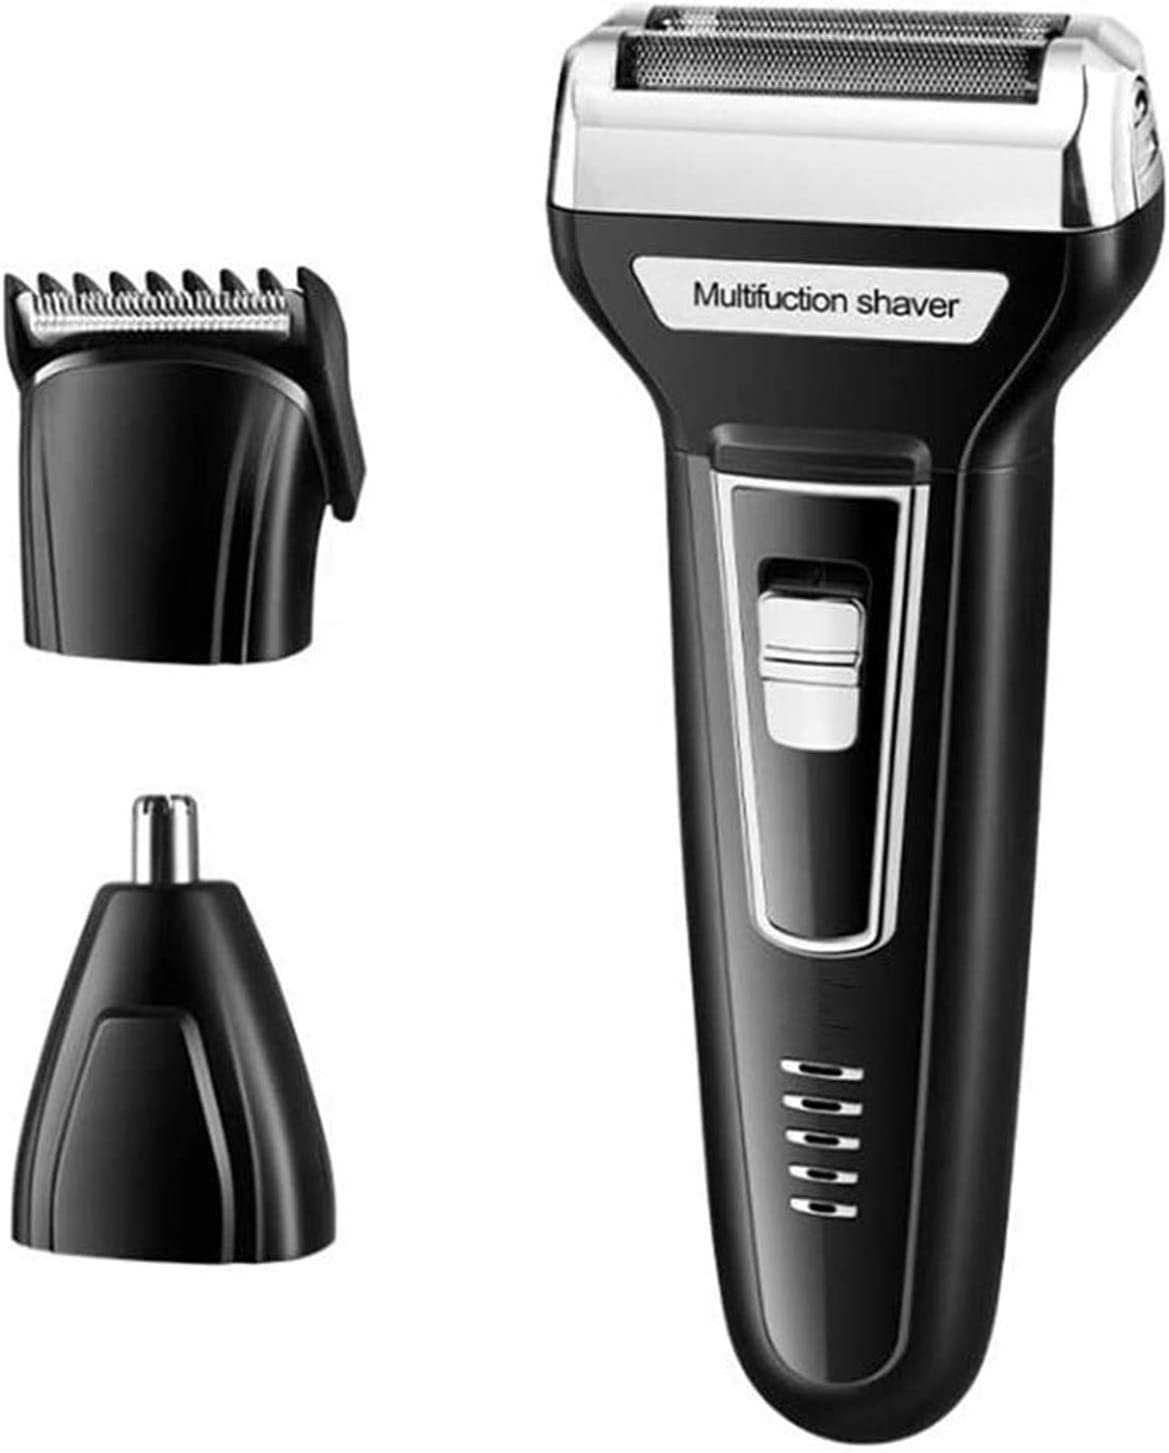 RenminRoad Electric shopping Razor for Men 3 1 Head Gr Miami Mall Shaver in